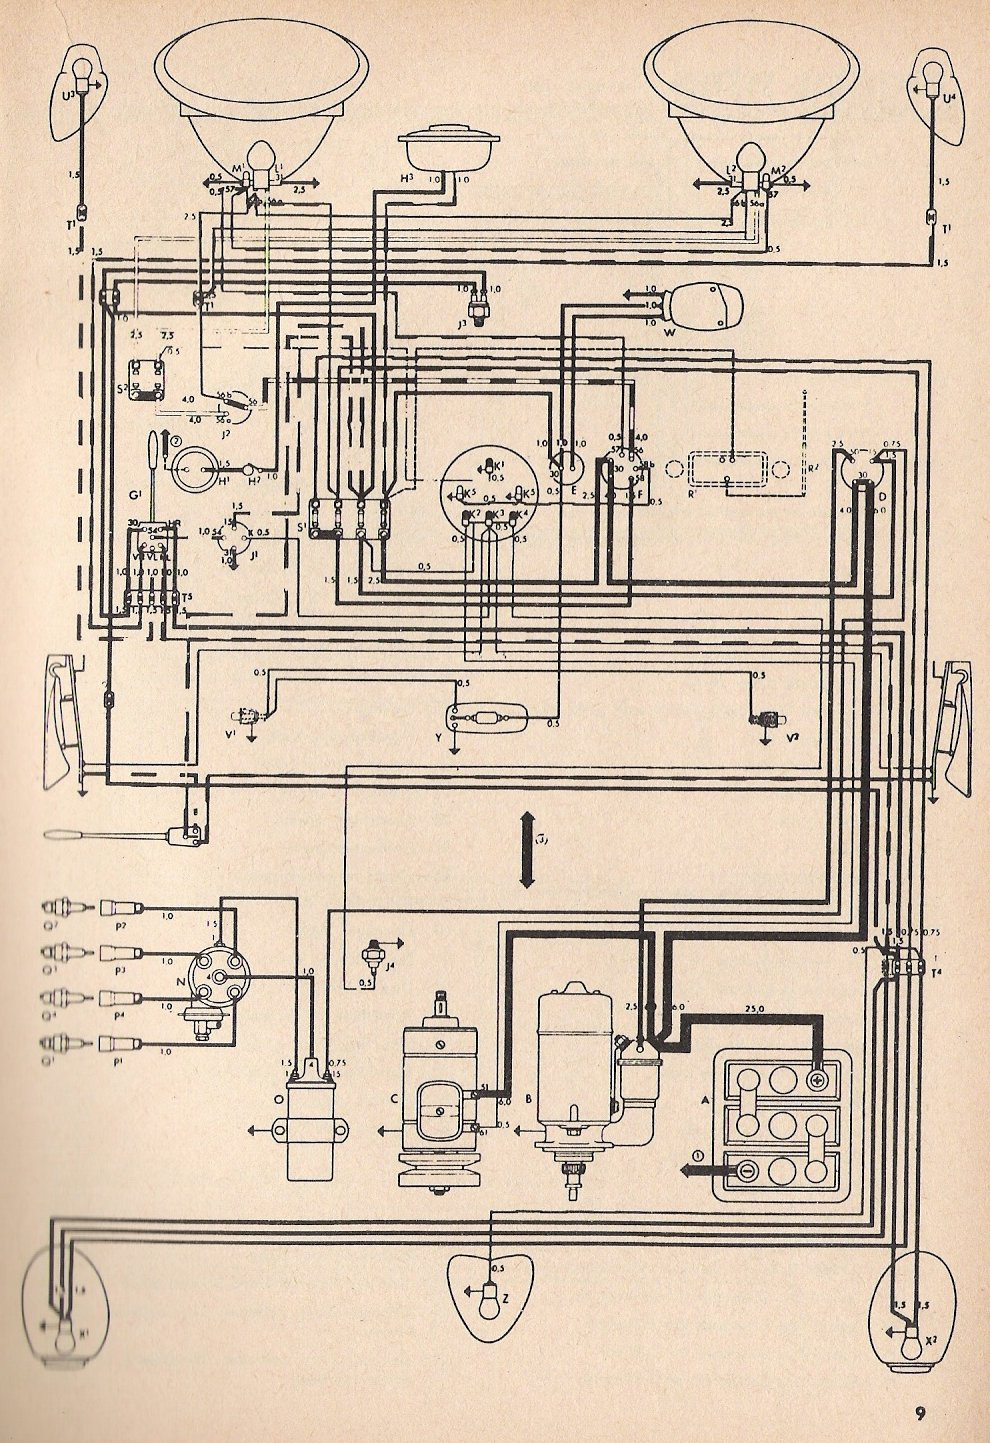 bug_toaug55 1949 vw wiring diagram on 1949 download wirning diagrams 74 VW Beetle Wiring Diagram at crackthecode.co